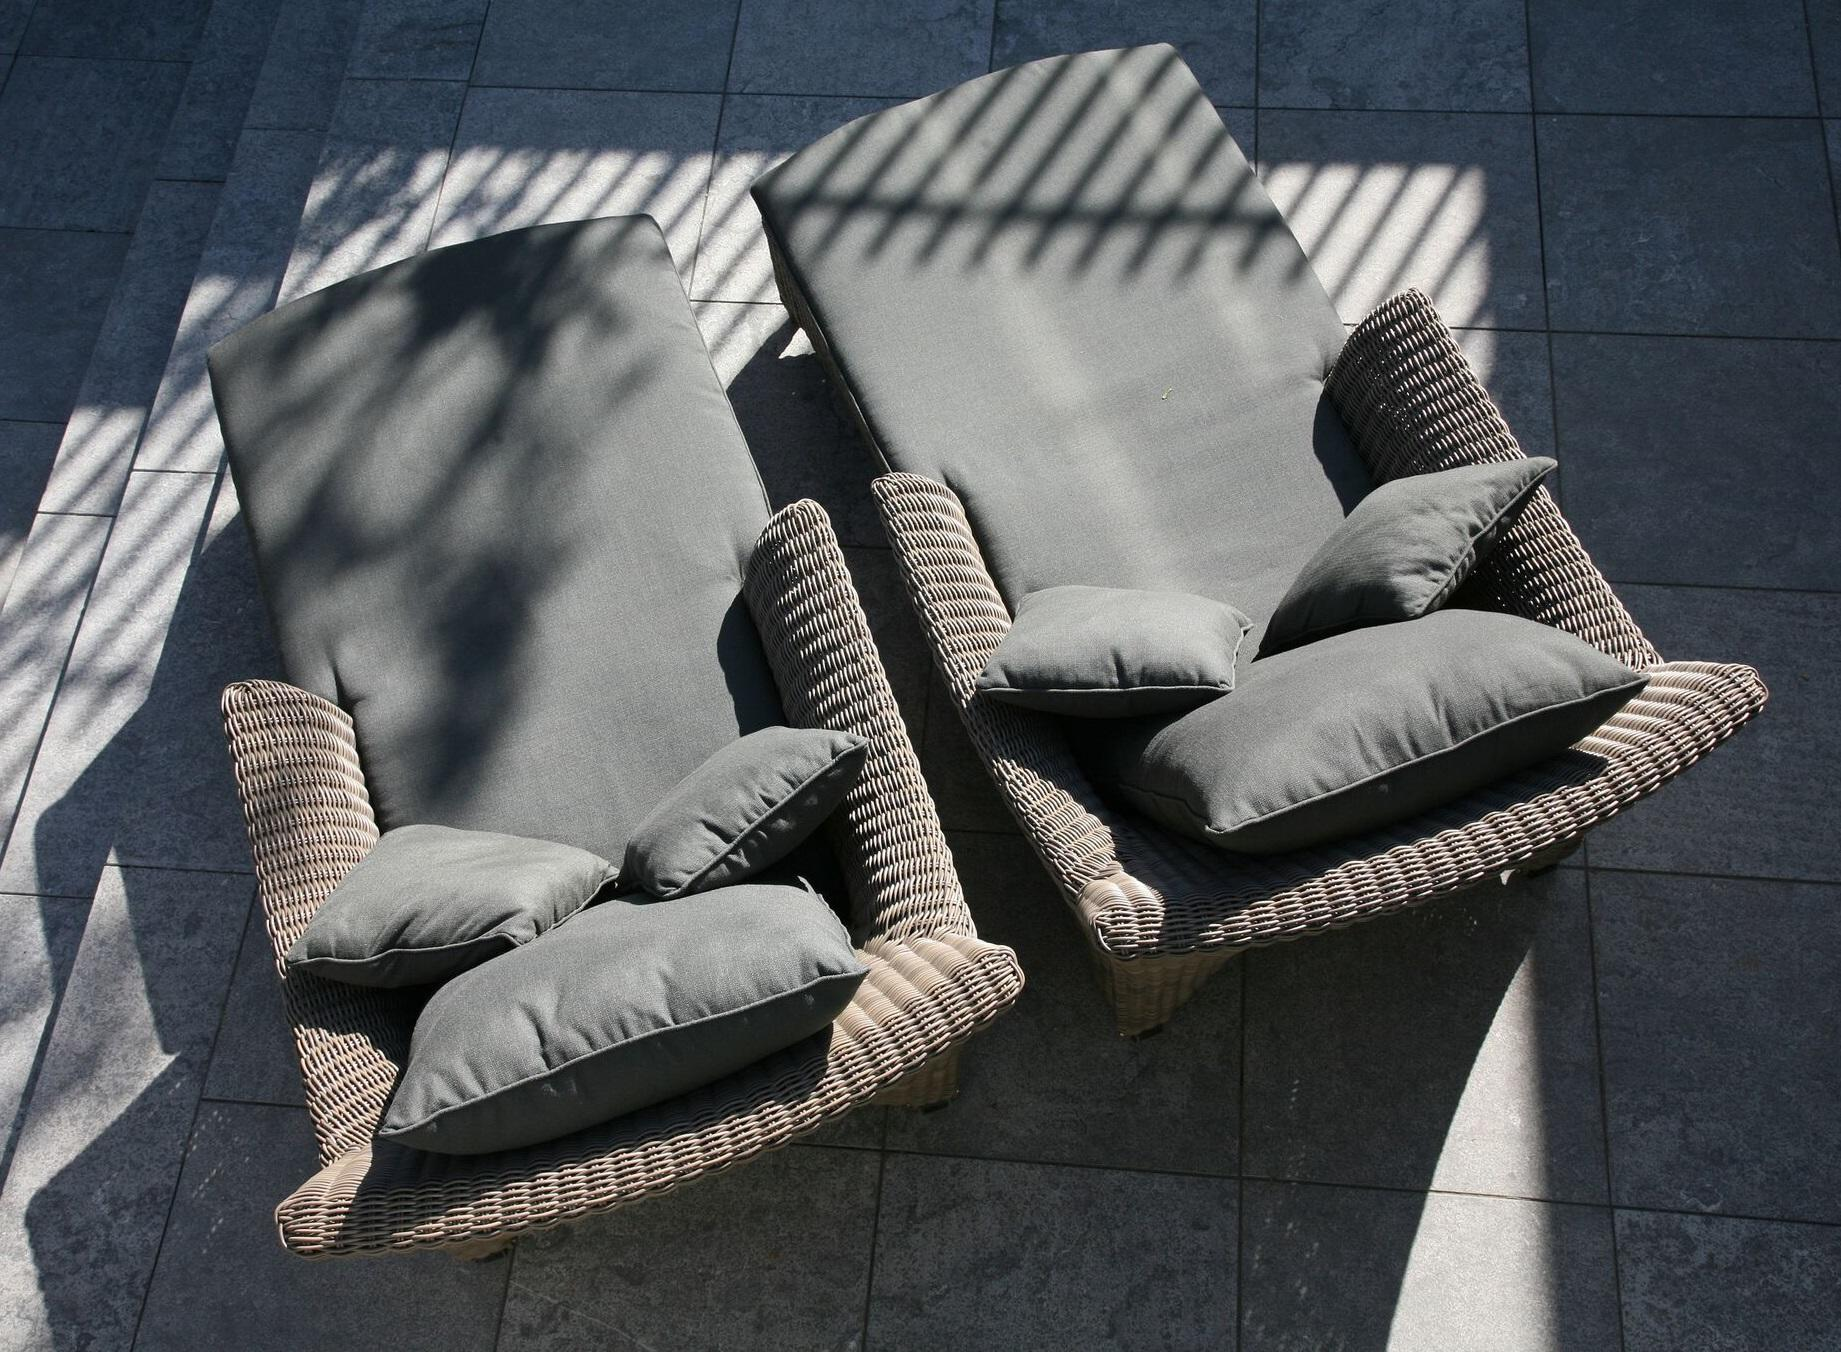 rattan daybed or sun loungers from above view